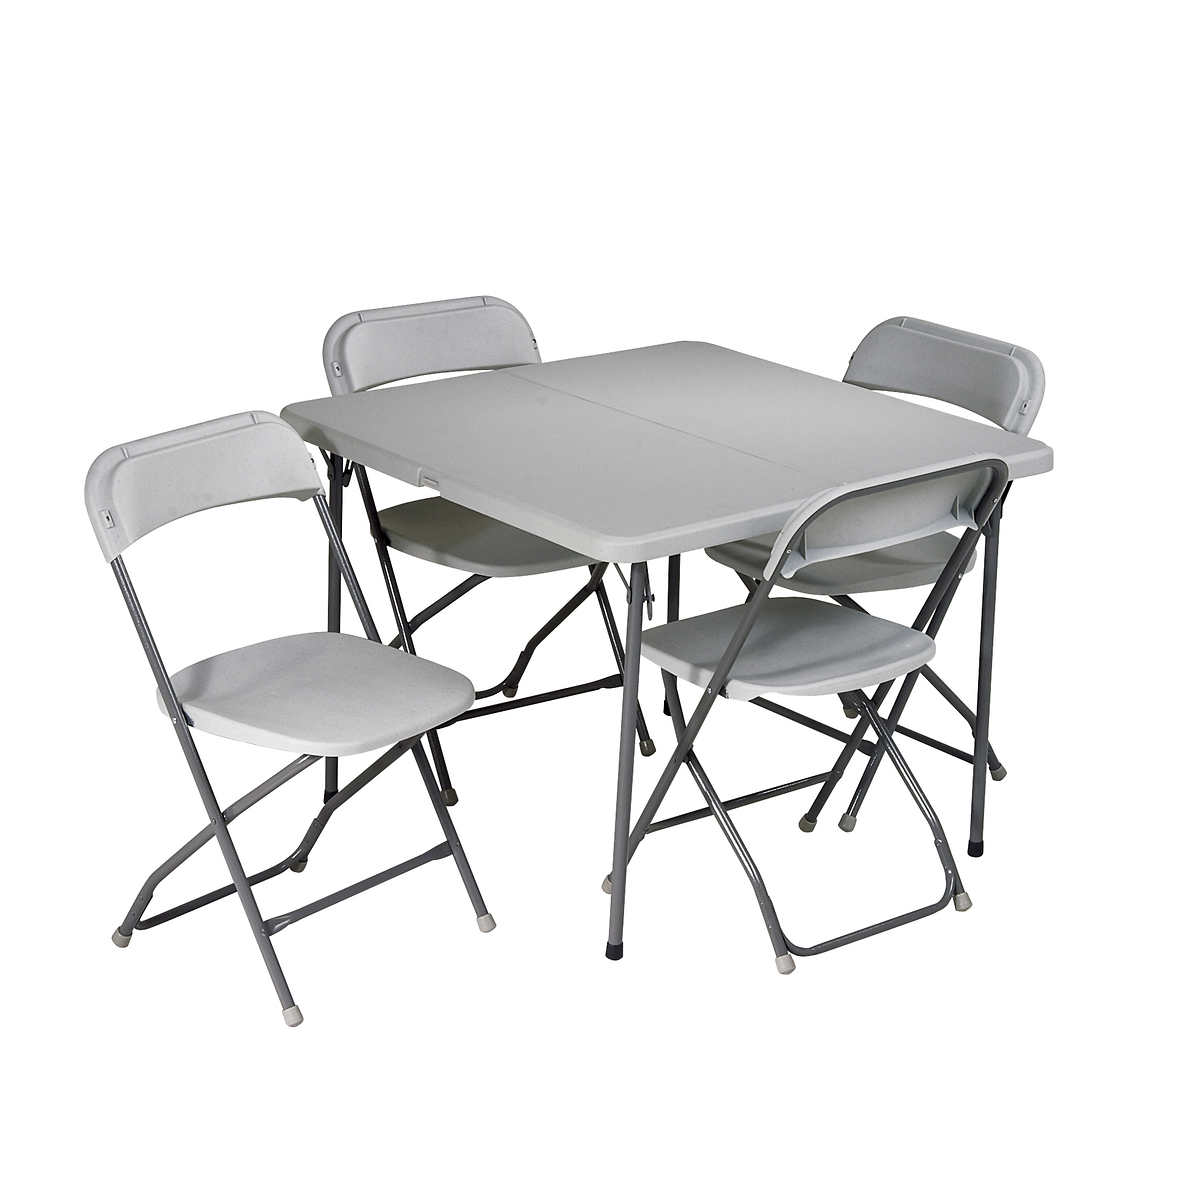 Folding Card Table and Chairs 5 pc Set